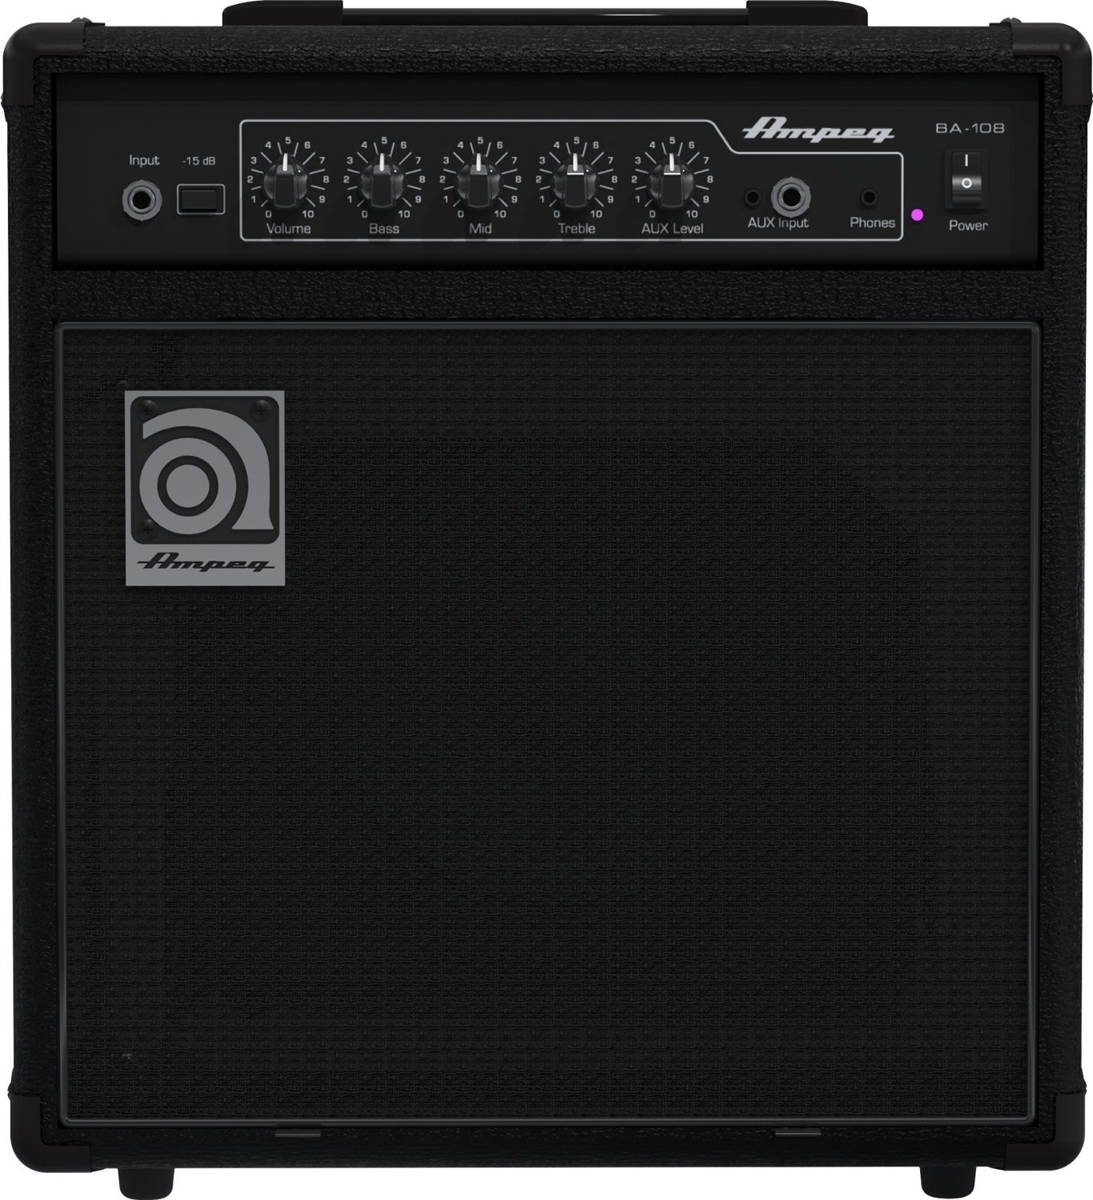 "Ampeg BA-108V2 20W 8"" Bass Combo Amplifier"